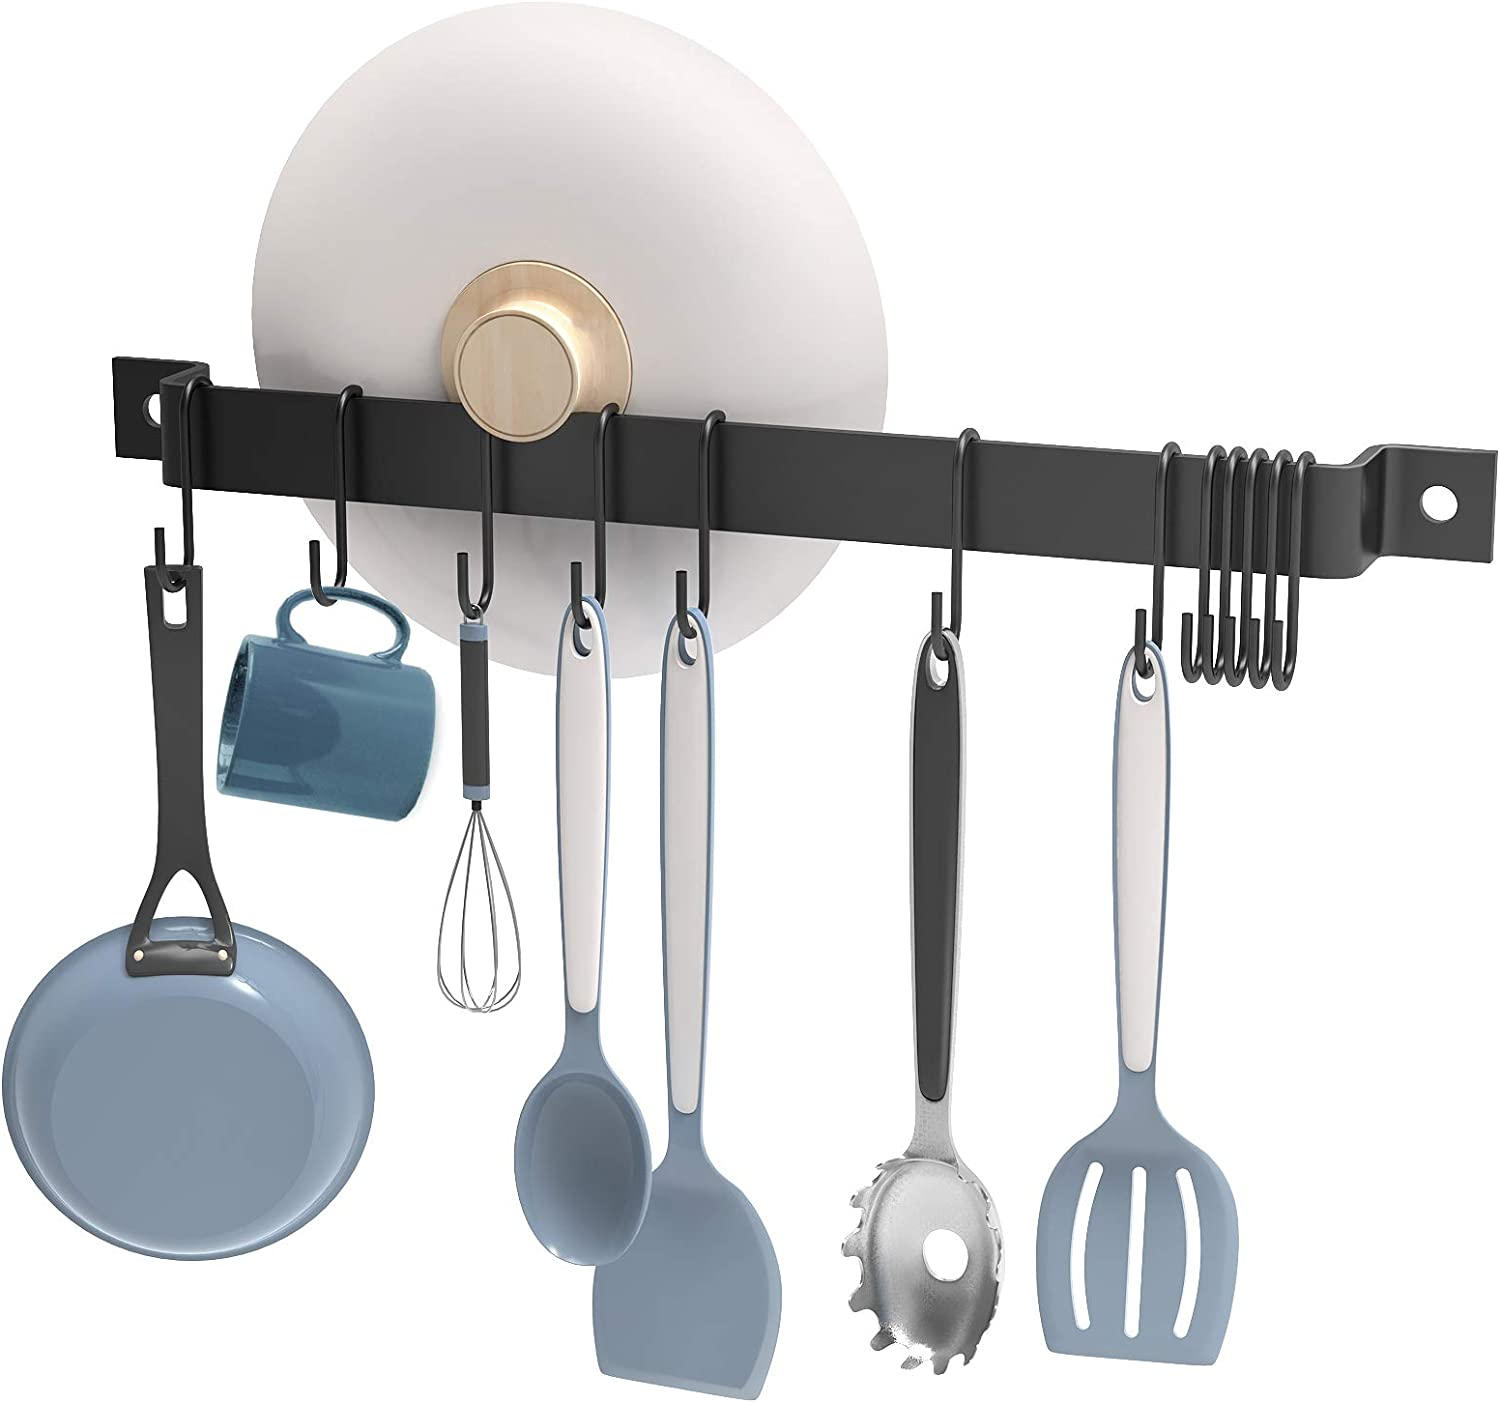 Nuovoware 16.3 Inch Kitchen Rail Rack S Max Cheap mail order sales 71% OFF Detachable 15 with Hooks